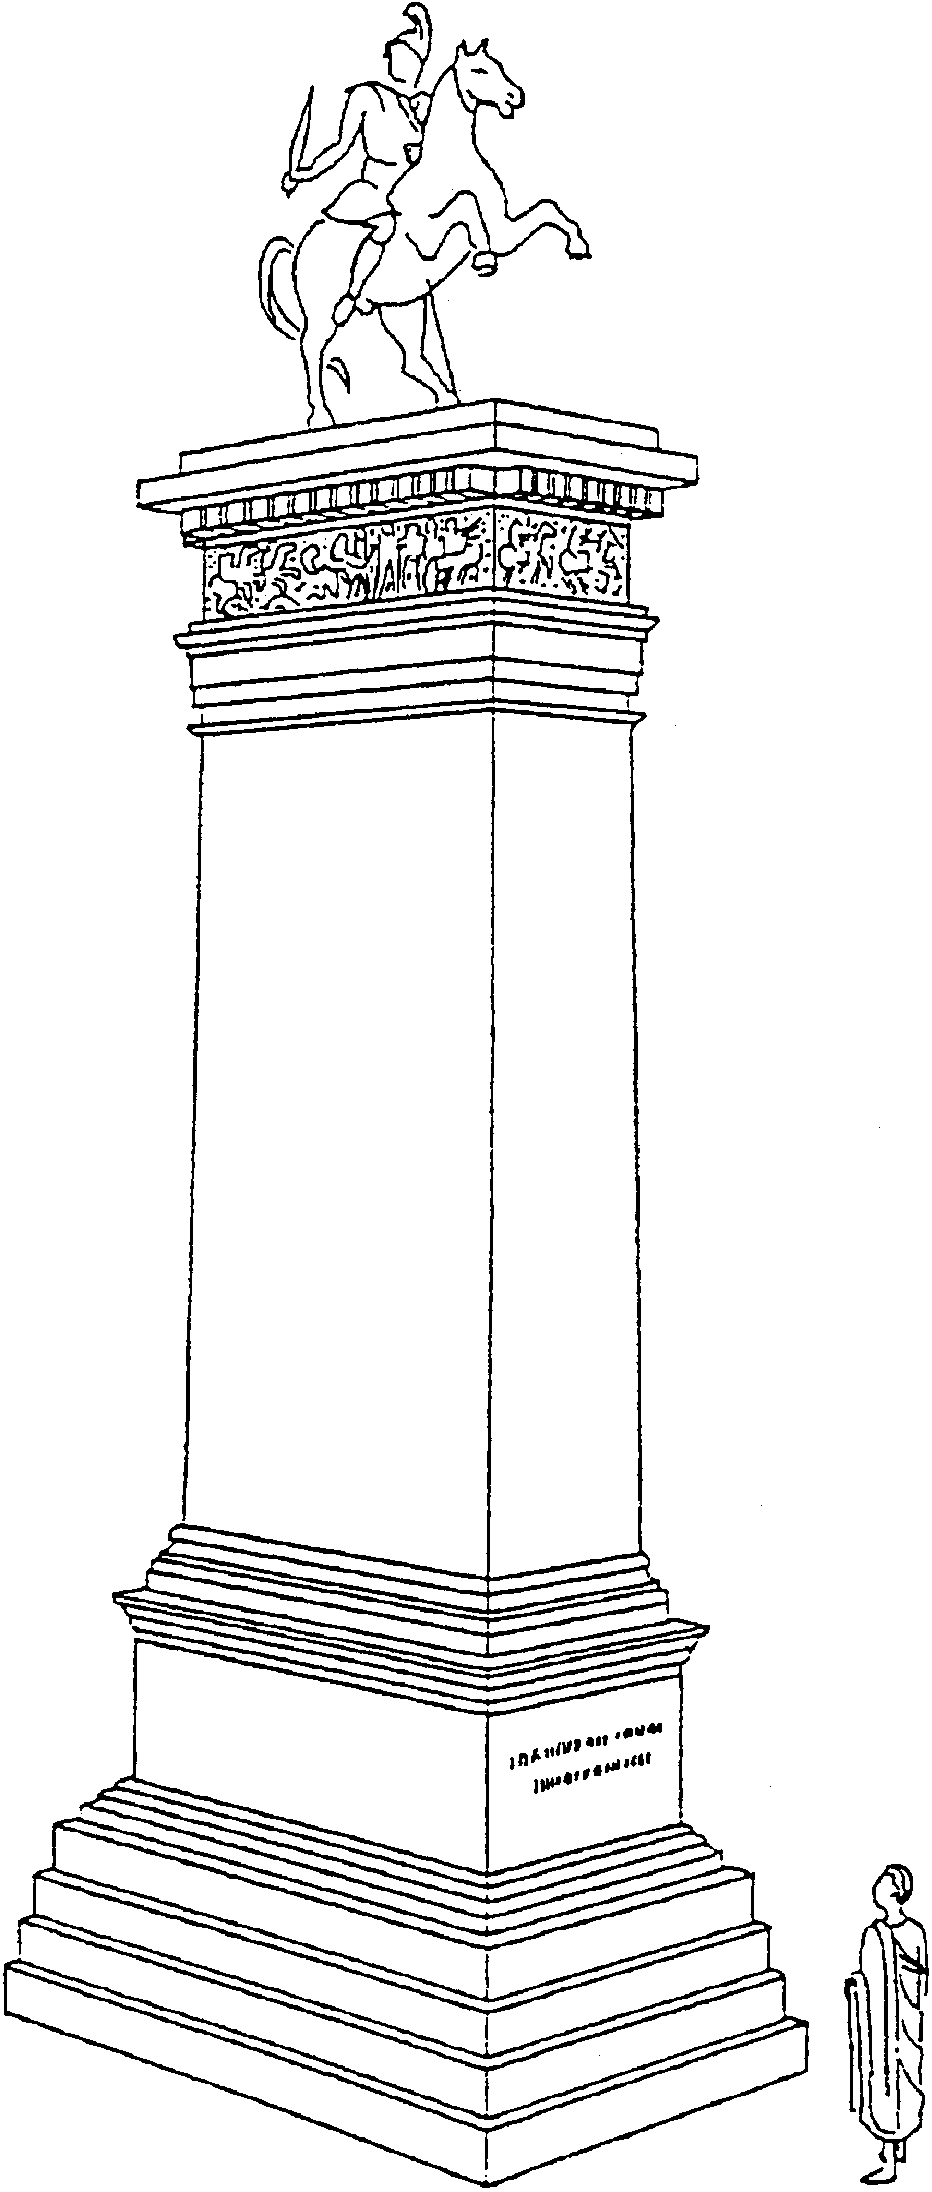 Reconstruction of the monument of Aemilius Paullus, shortly after 167 BC, Delphi, part of Roman Republic (now Greece)